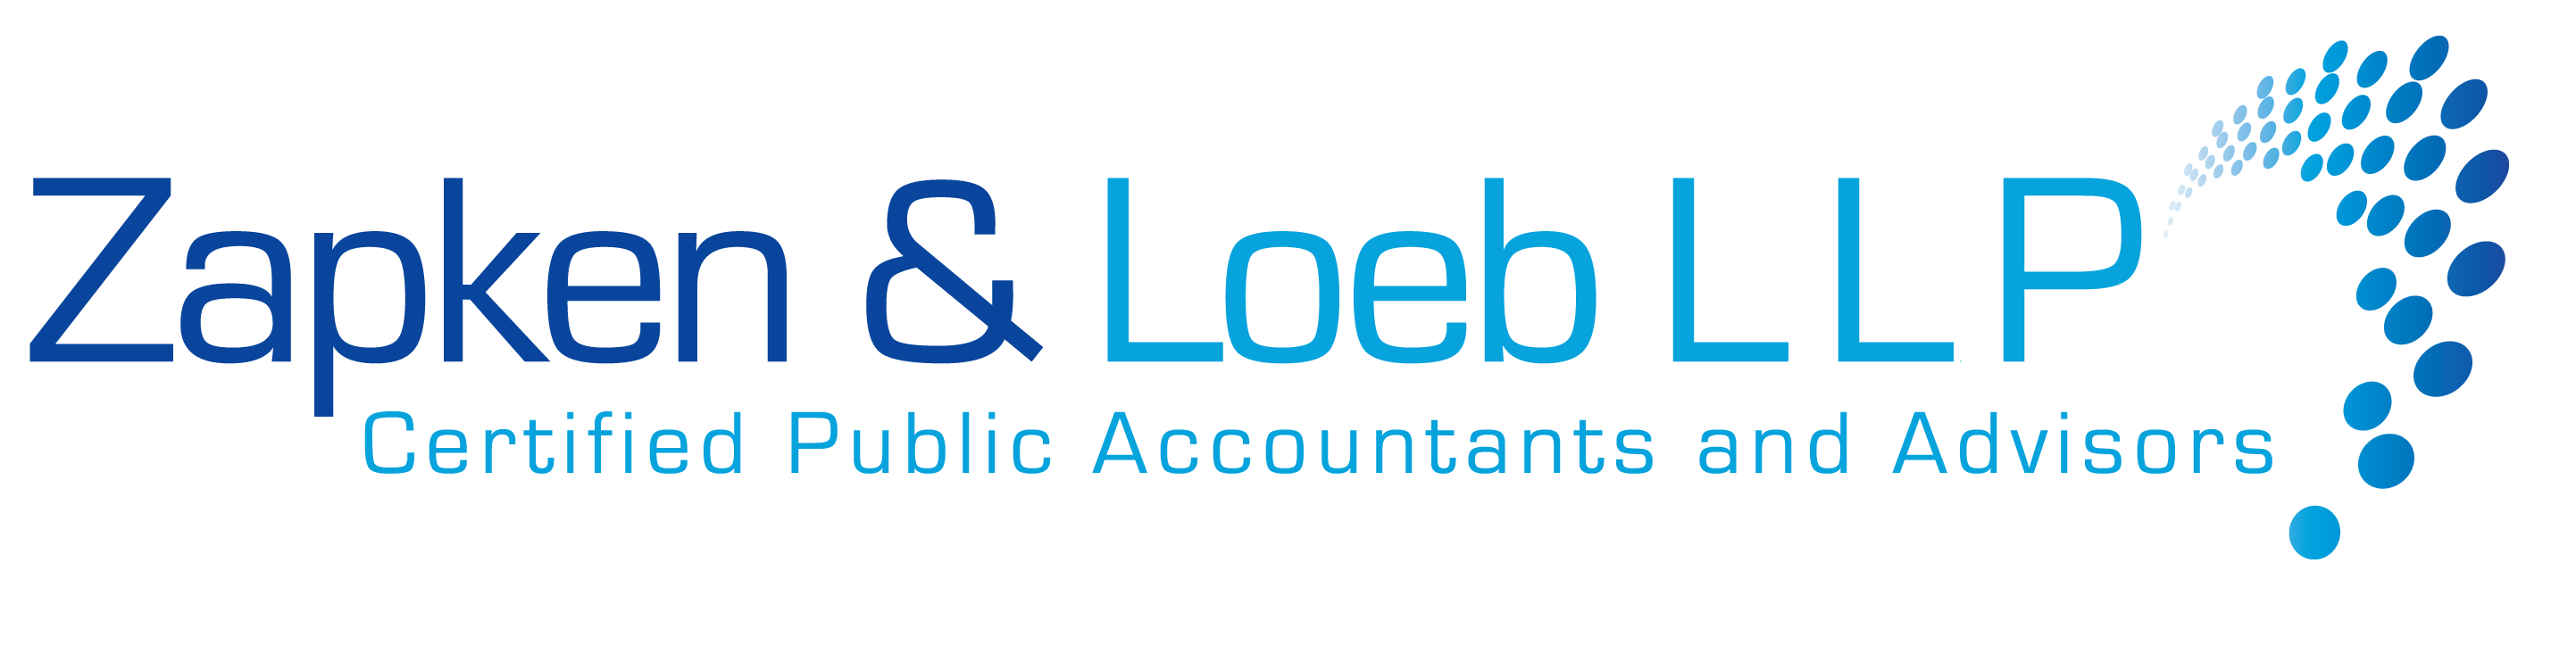 Woodbury, NY Accounting Firm | QuickBooks Services Page | Zapken & Loeb L.L.P.